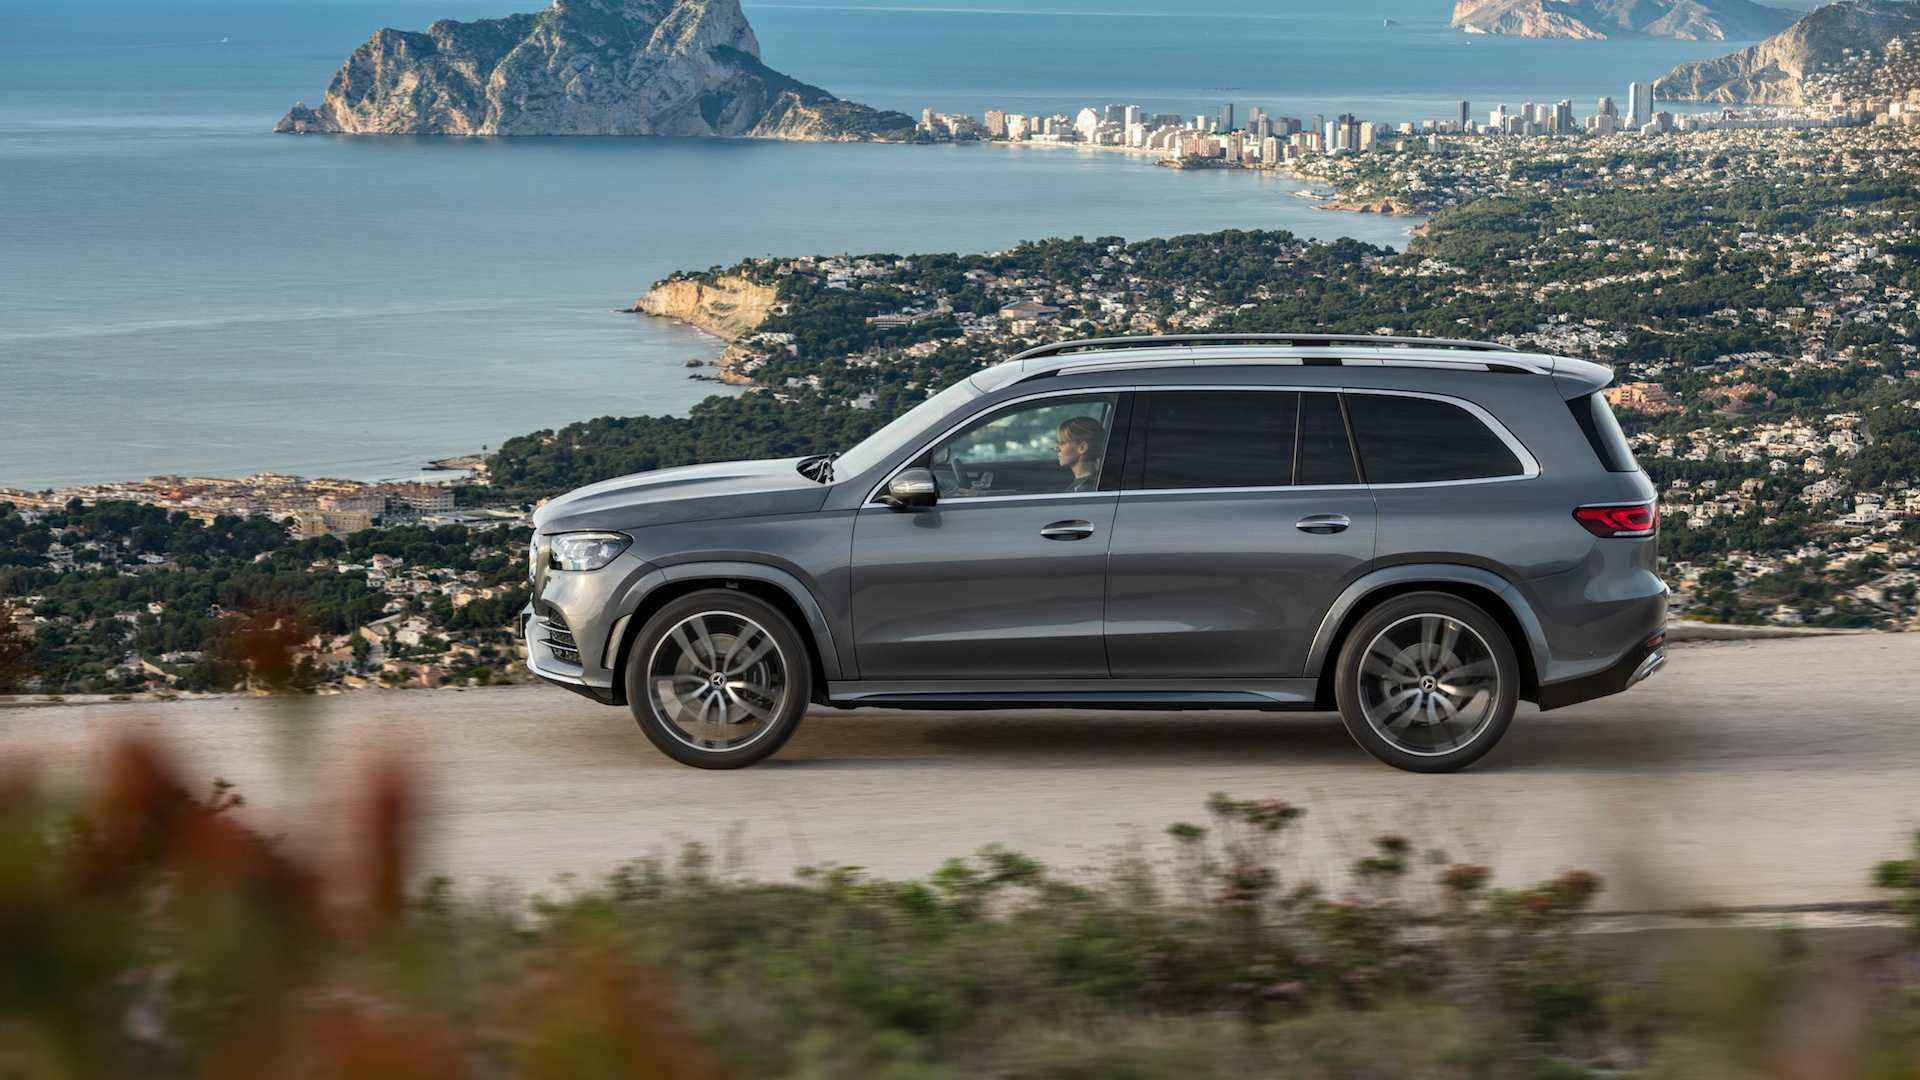 2020 Mercedes GLS Wallpaper